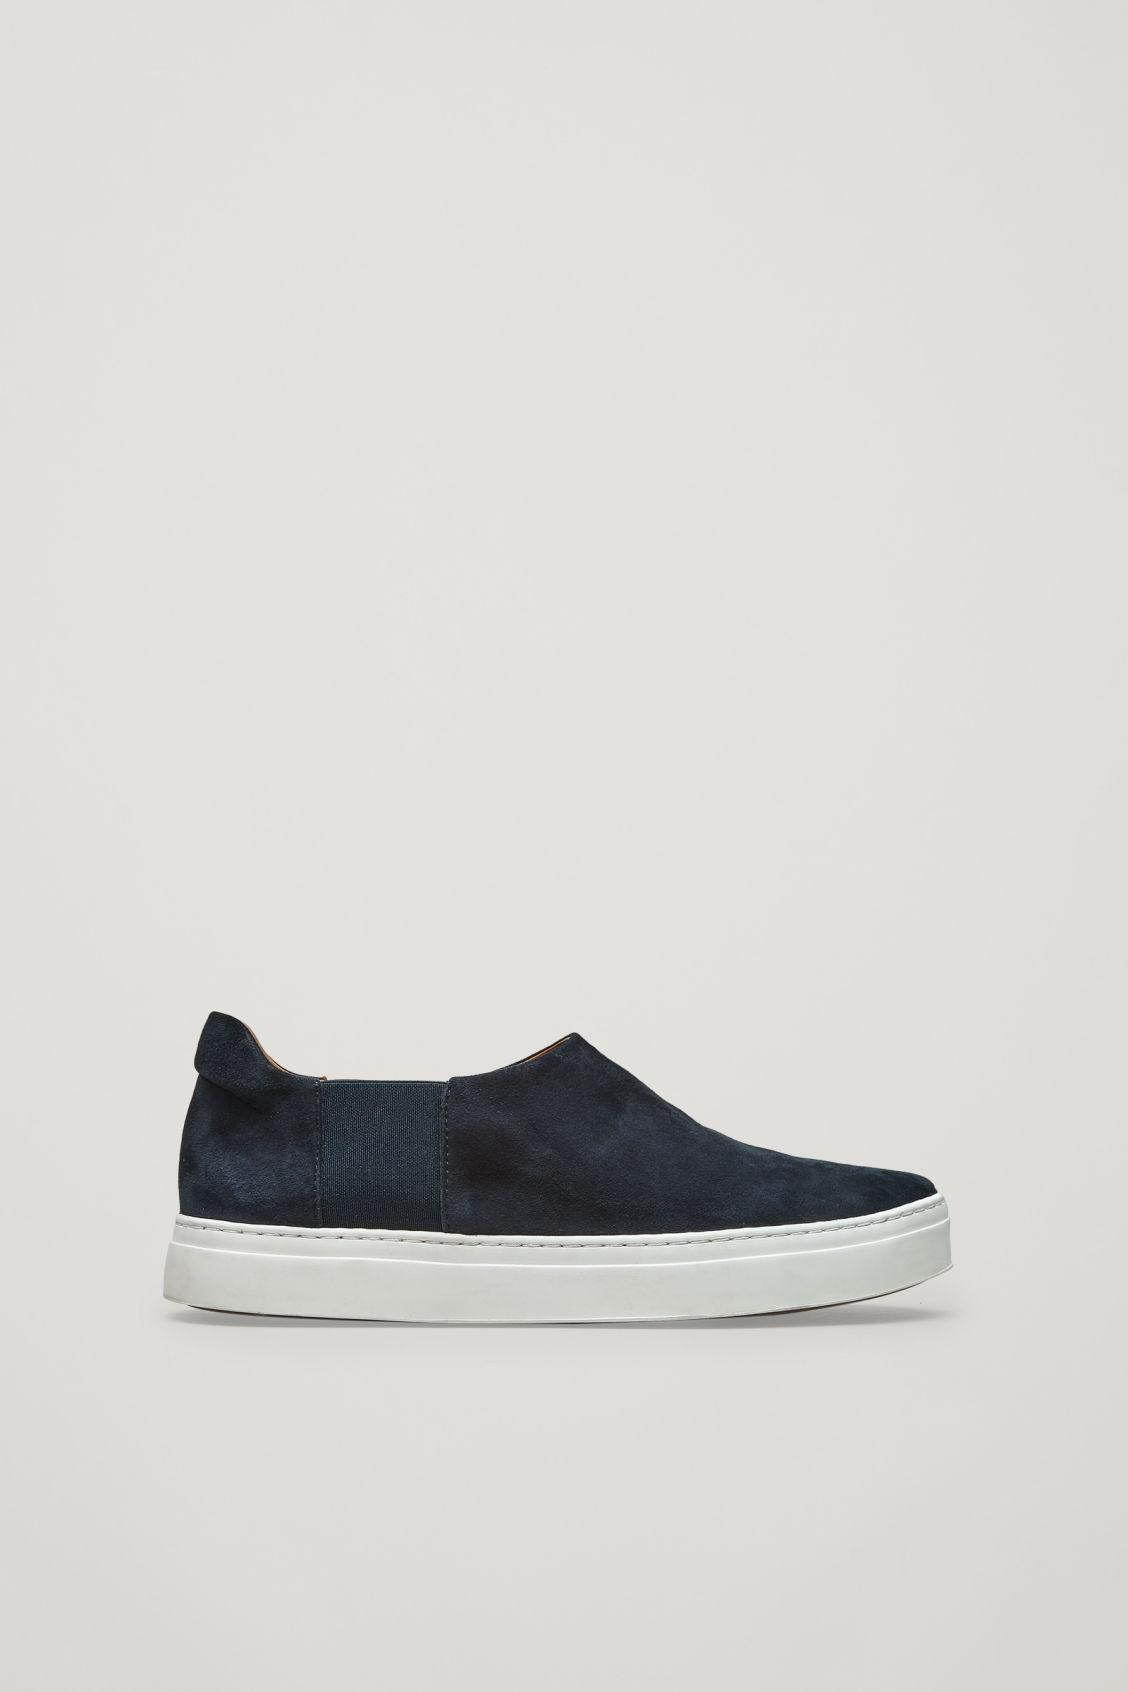 8d40609a135b2 Cos Slip-On Leather Sneakers In Blue